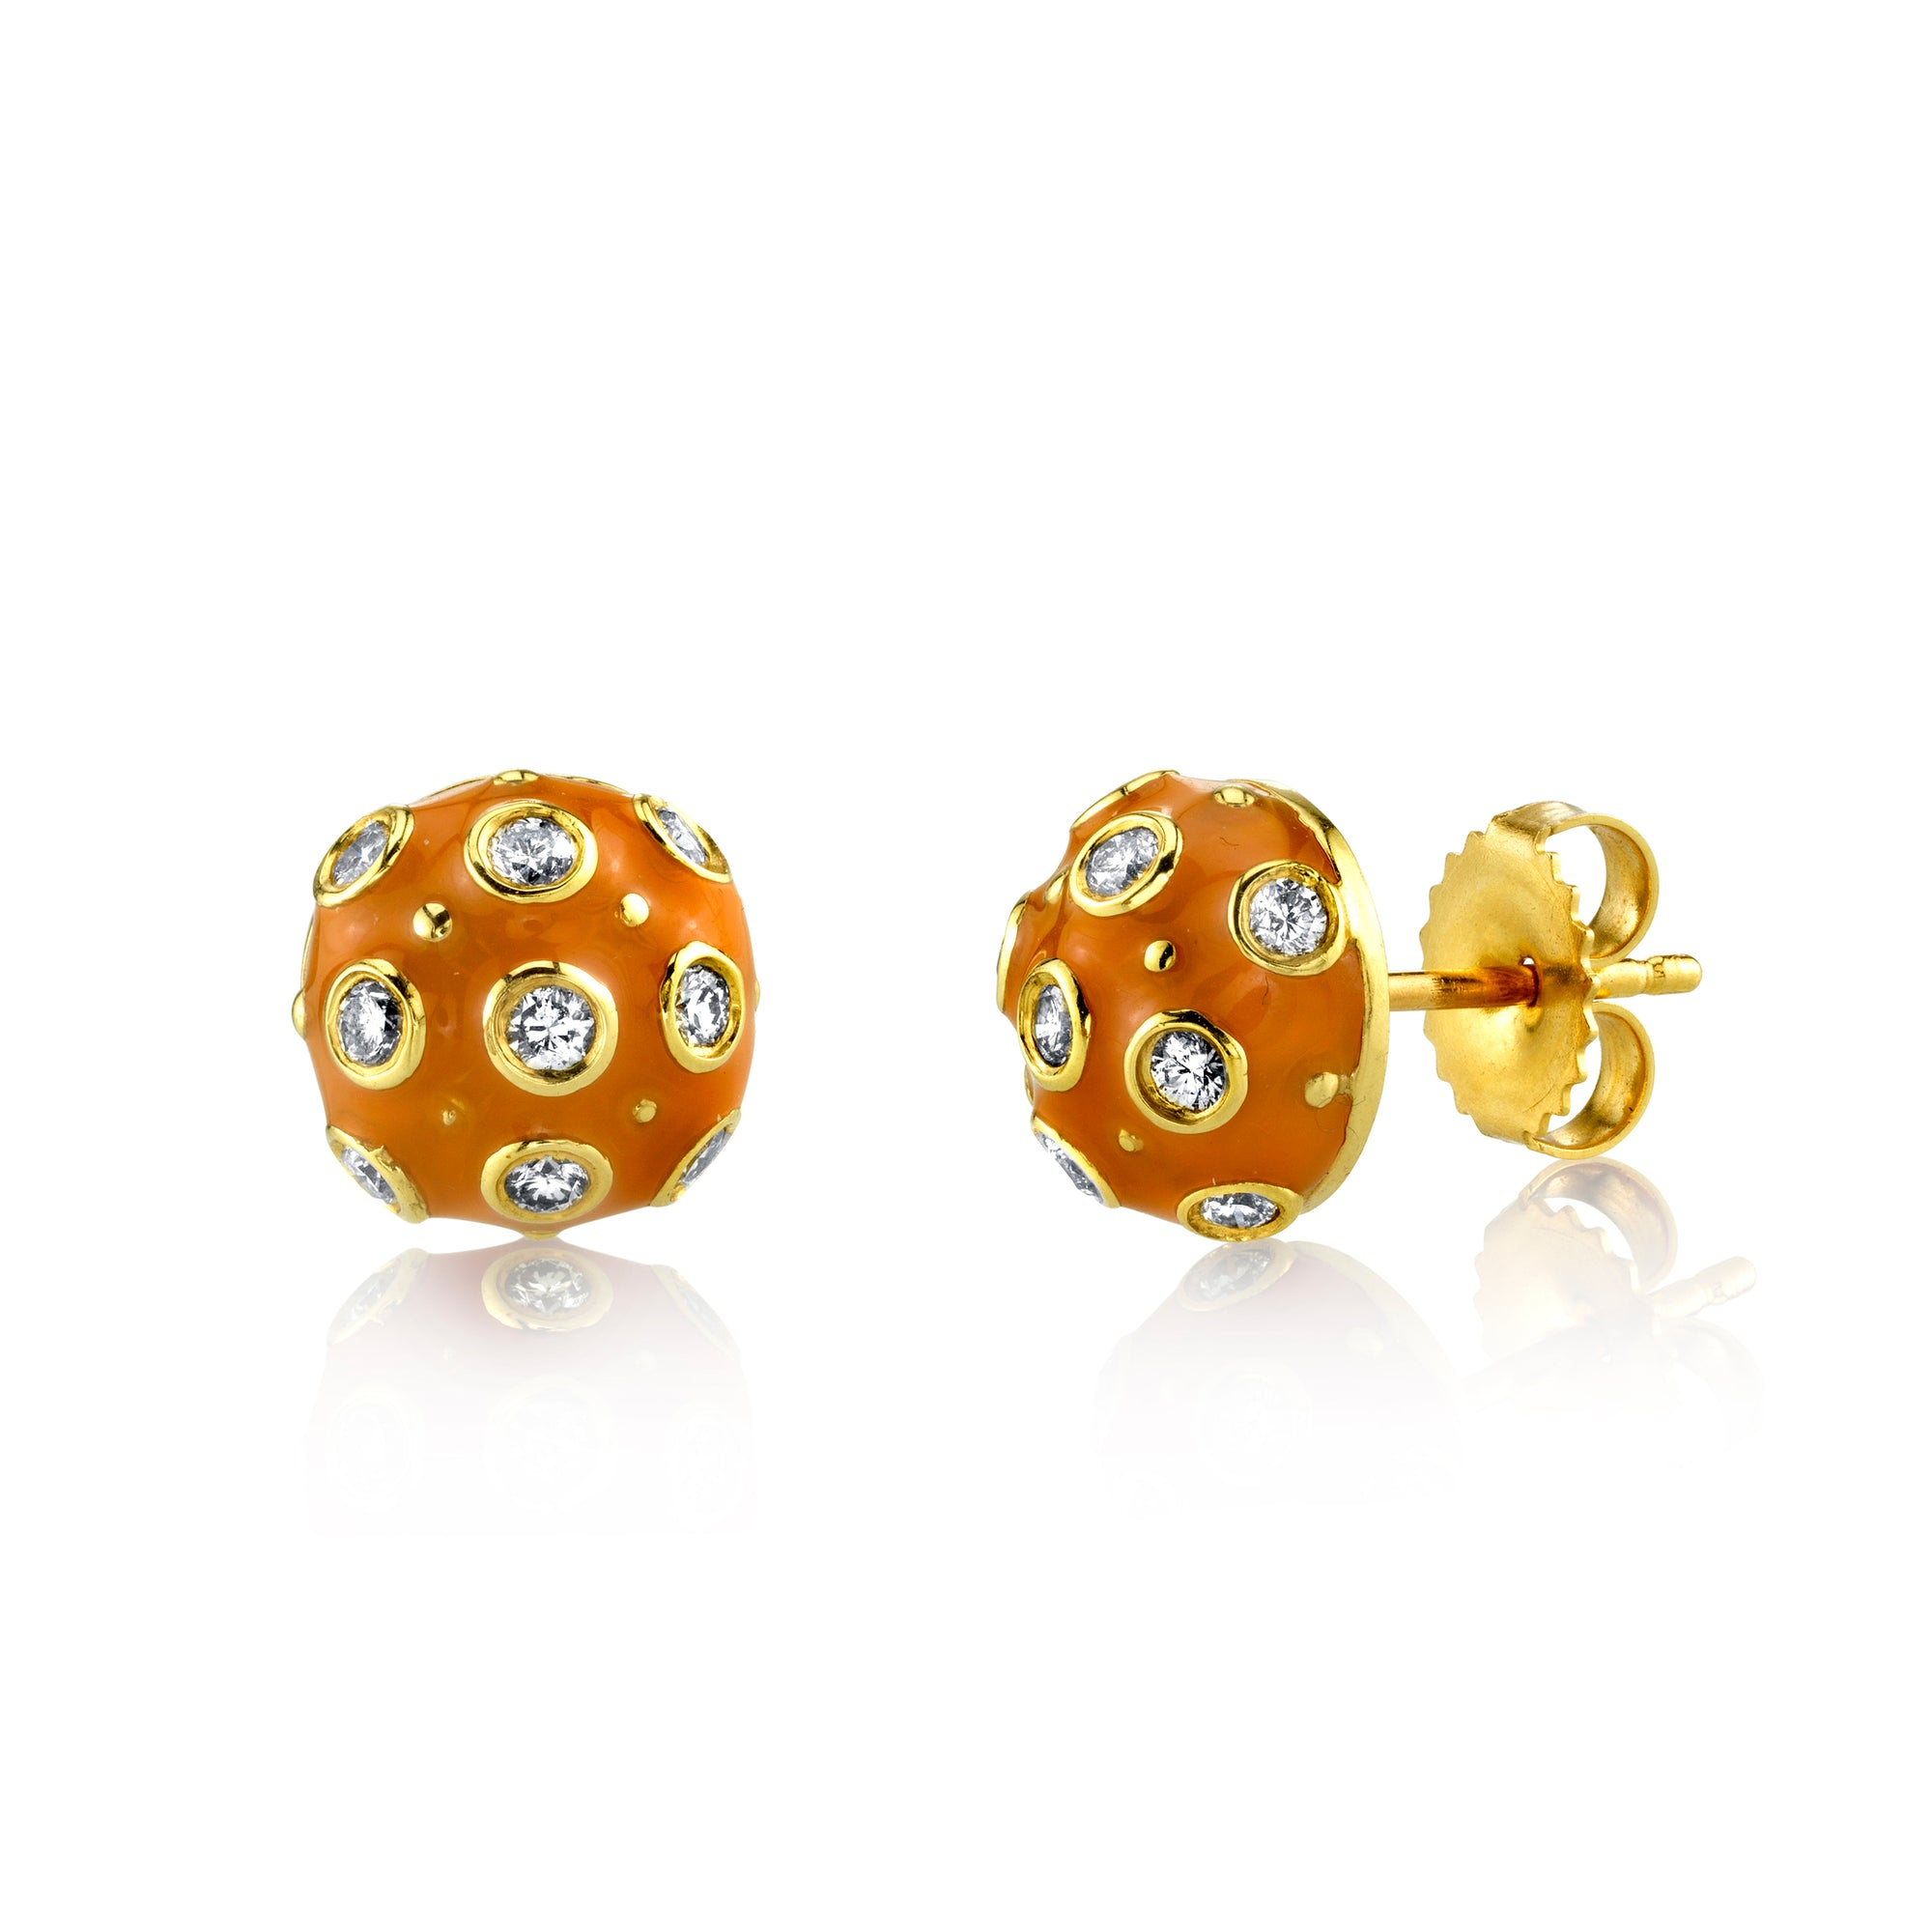 18k Yellow Gold, Orange Enamel and Diamond Stud Earrings by Lord Jewelry - Talisman Collection Fine Jewelers